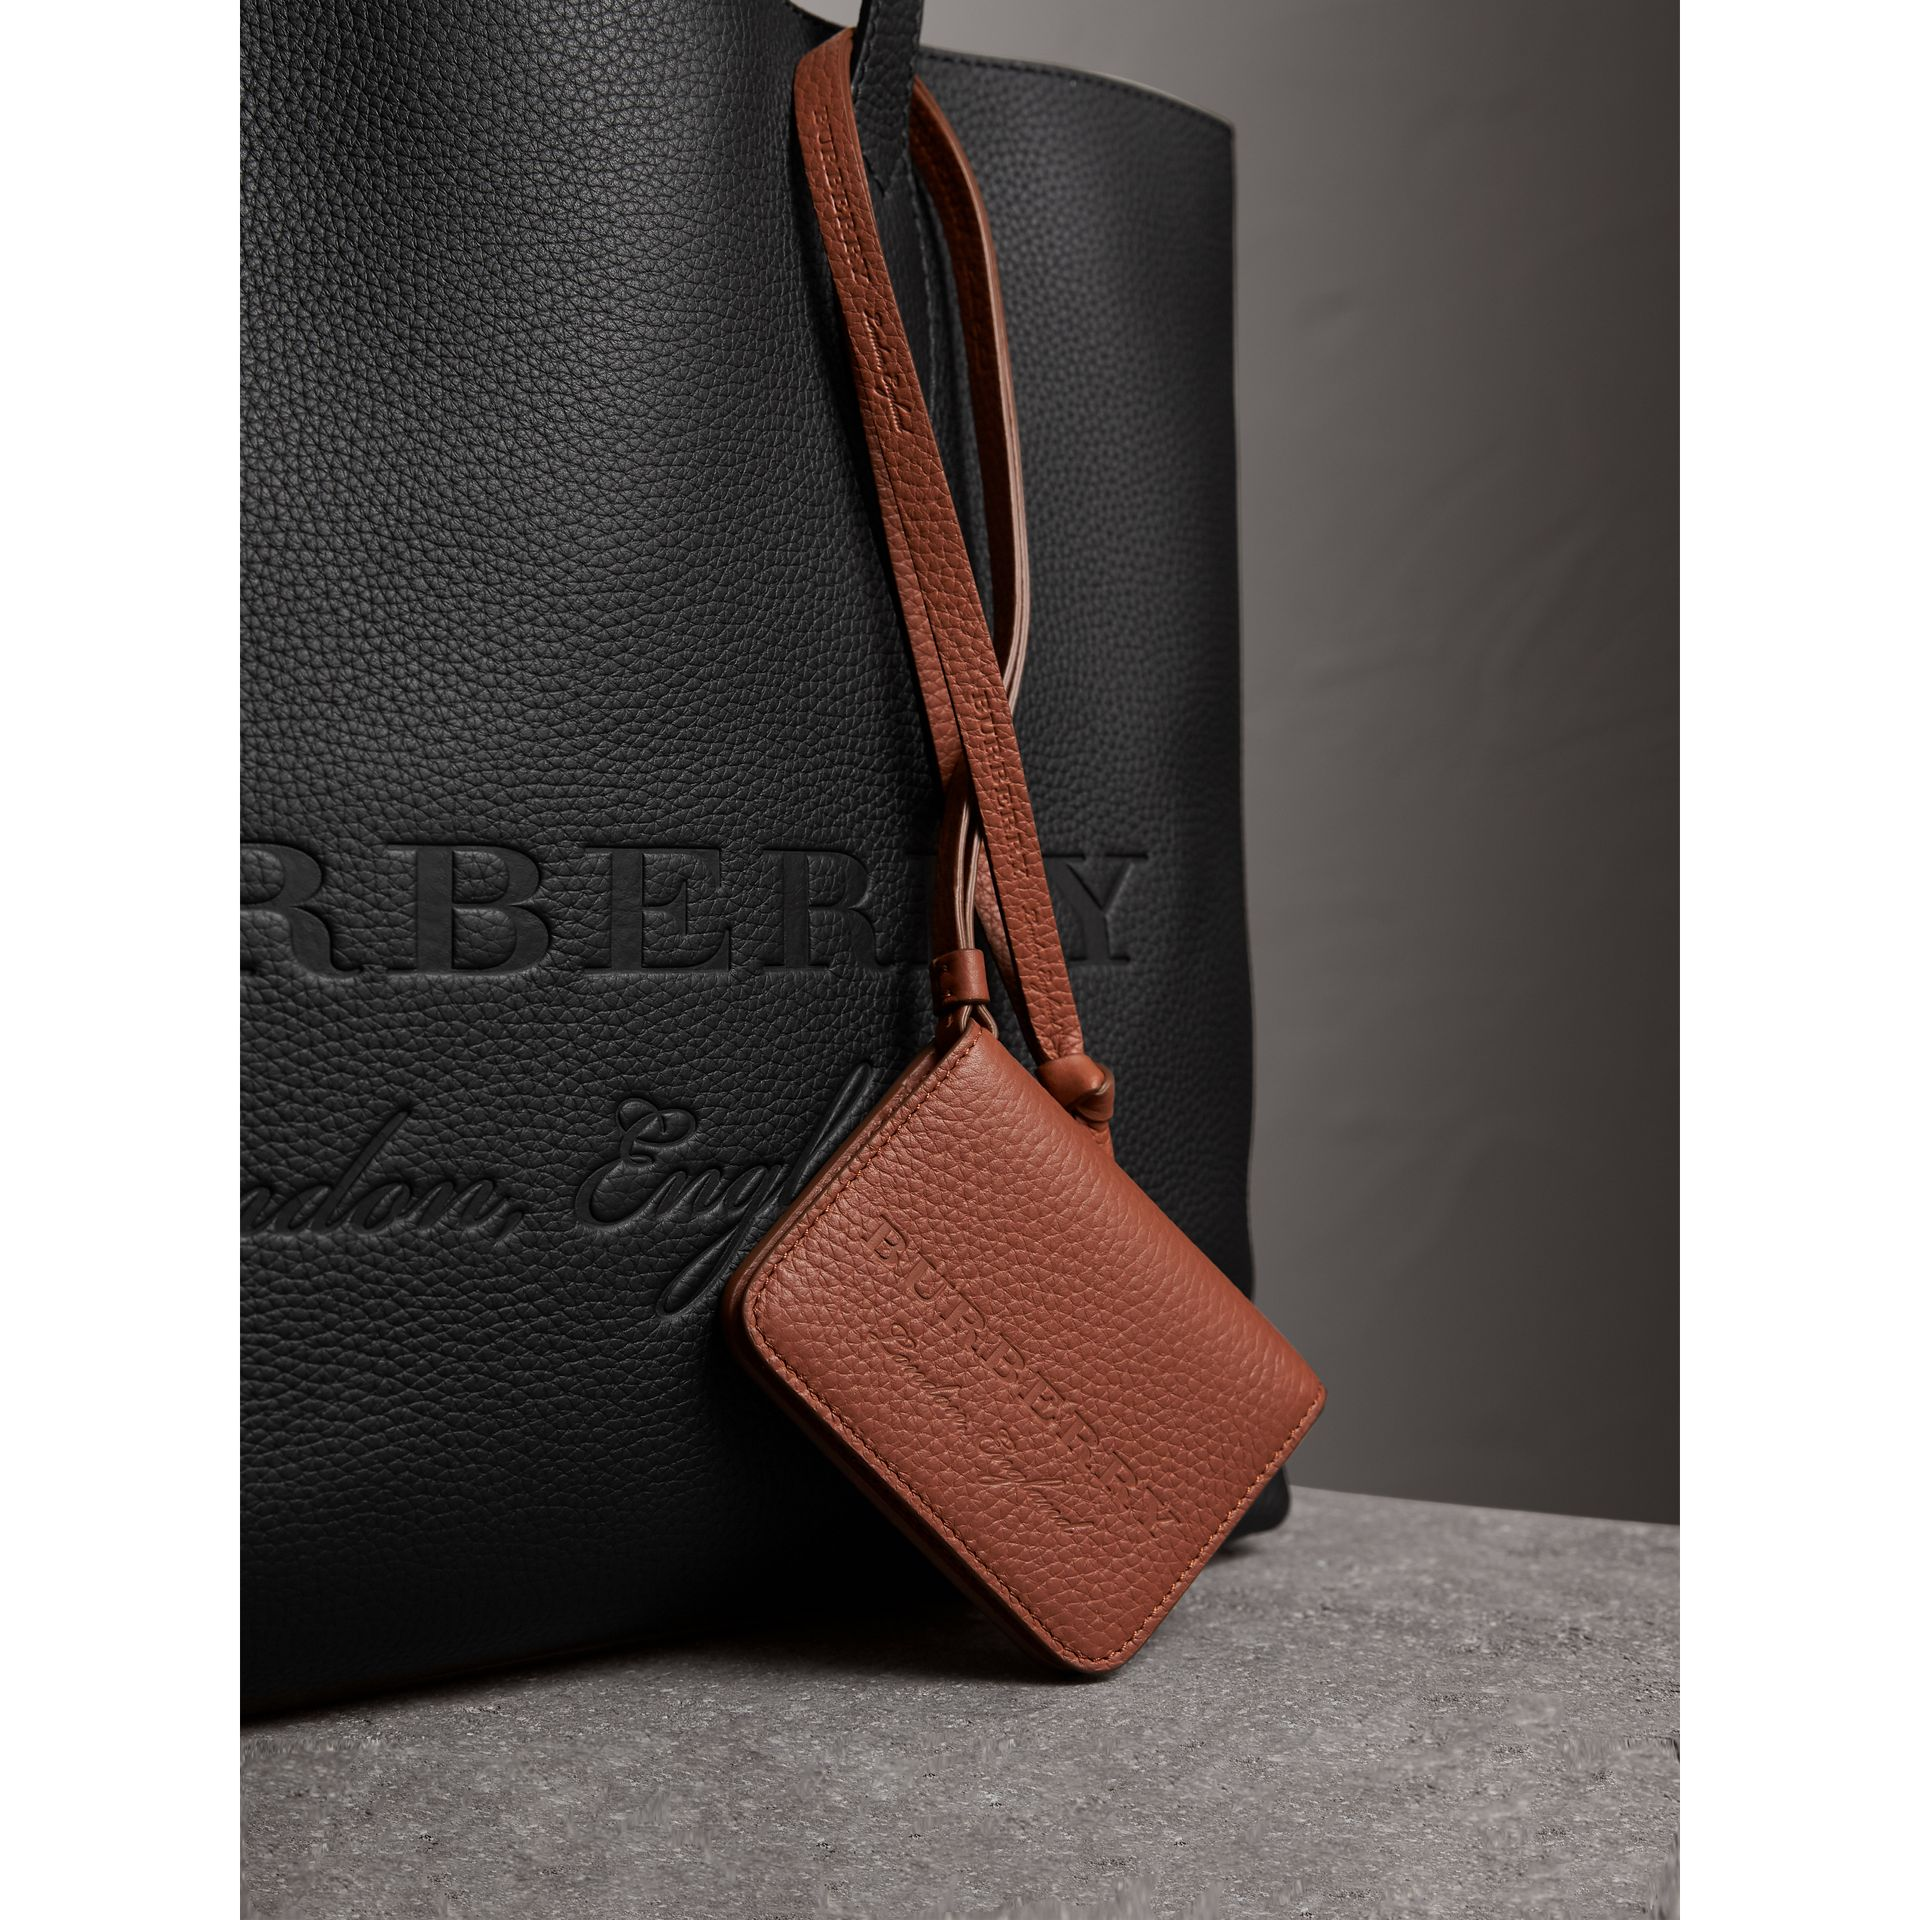 Embossed Leather ID Card Case Charm in Chestnut Brown - Women | Burberry - gallery image 1